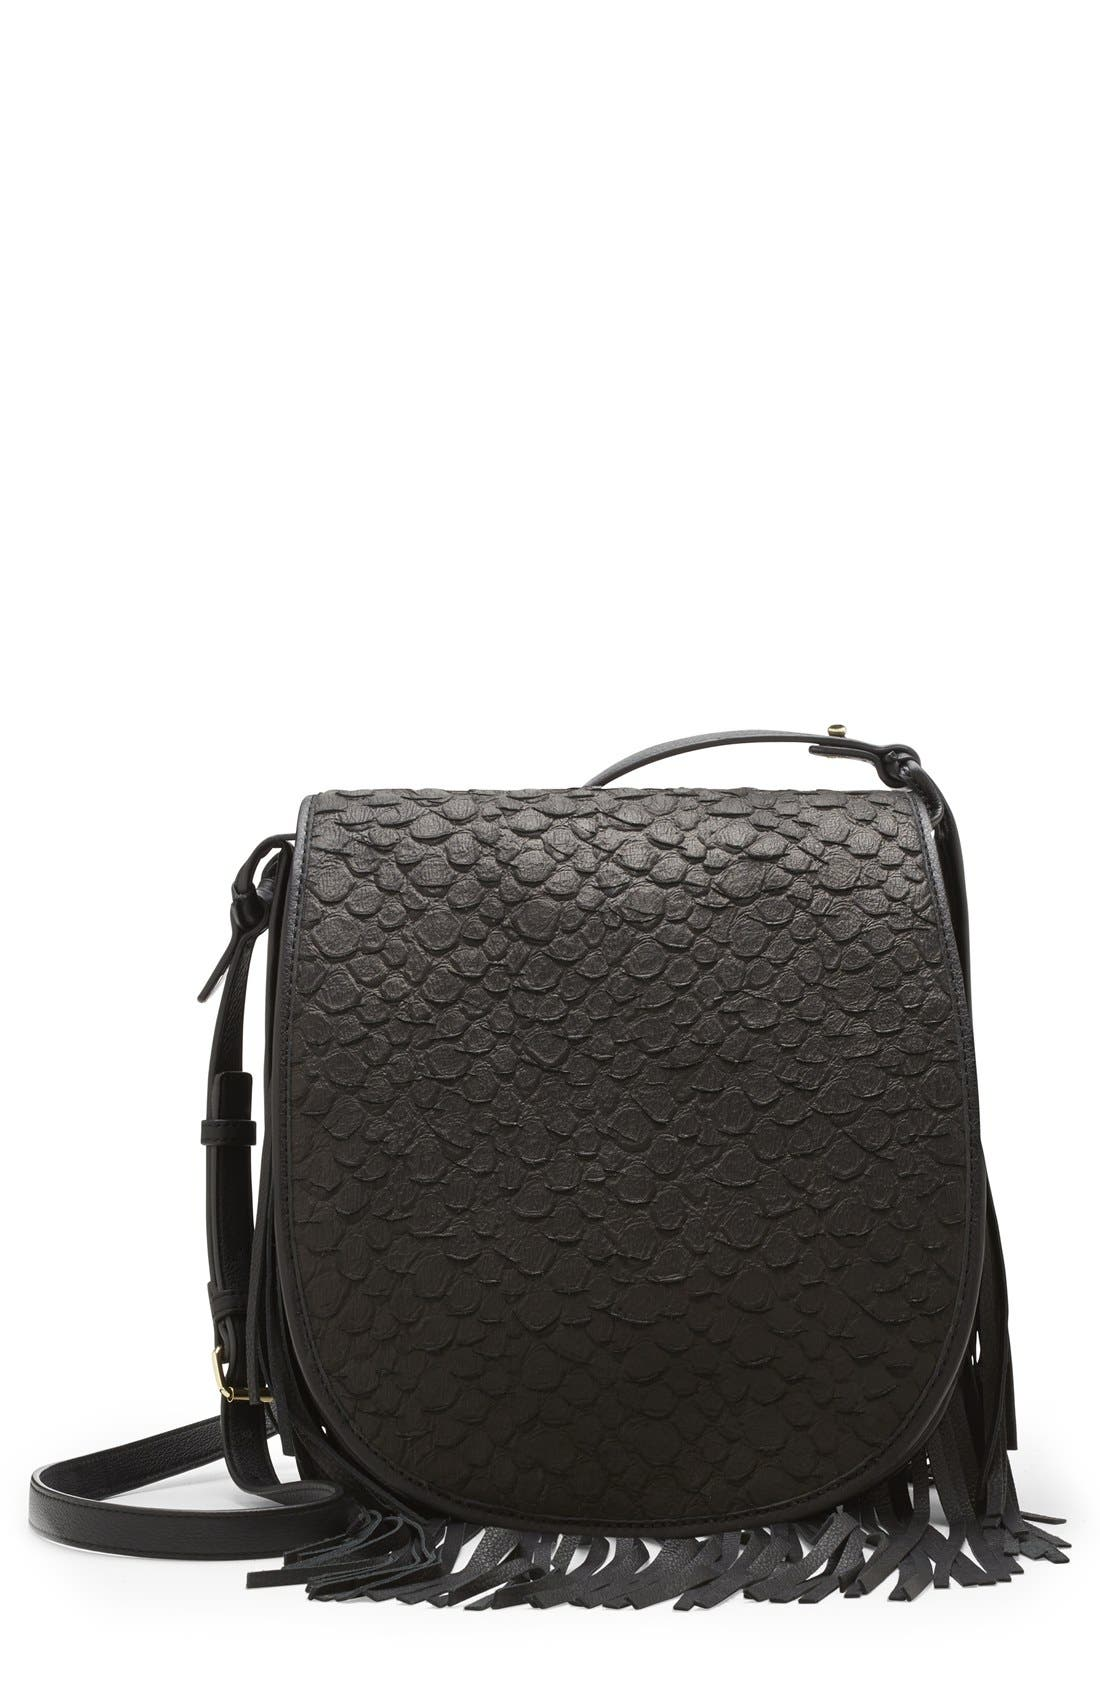 Main Image - Vince Camuto 'Andy' Crossbody Bag